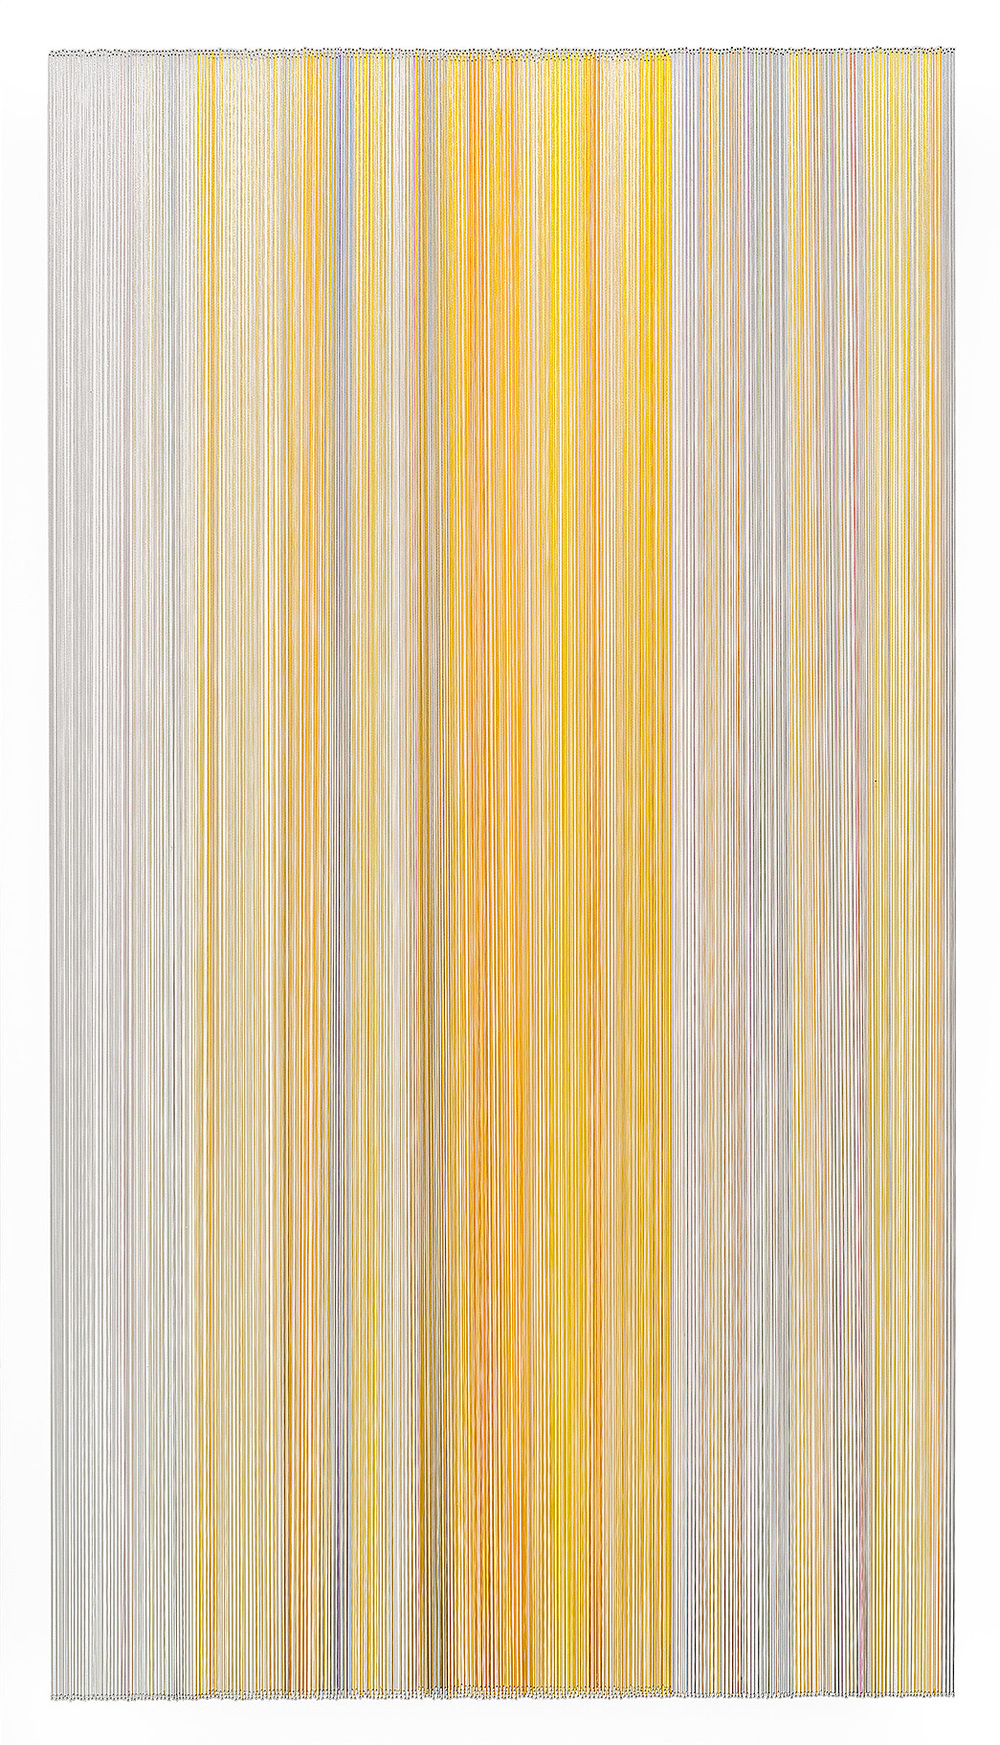 thread drawing 30  2014 rayon thread 42 by 24 inches